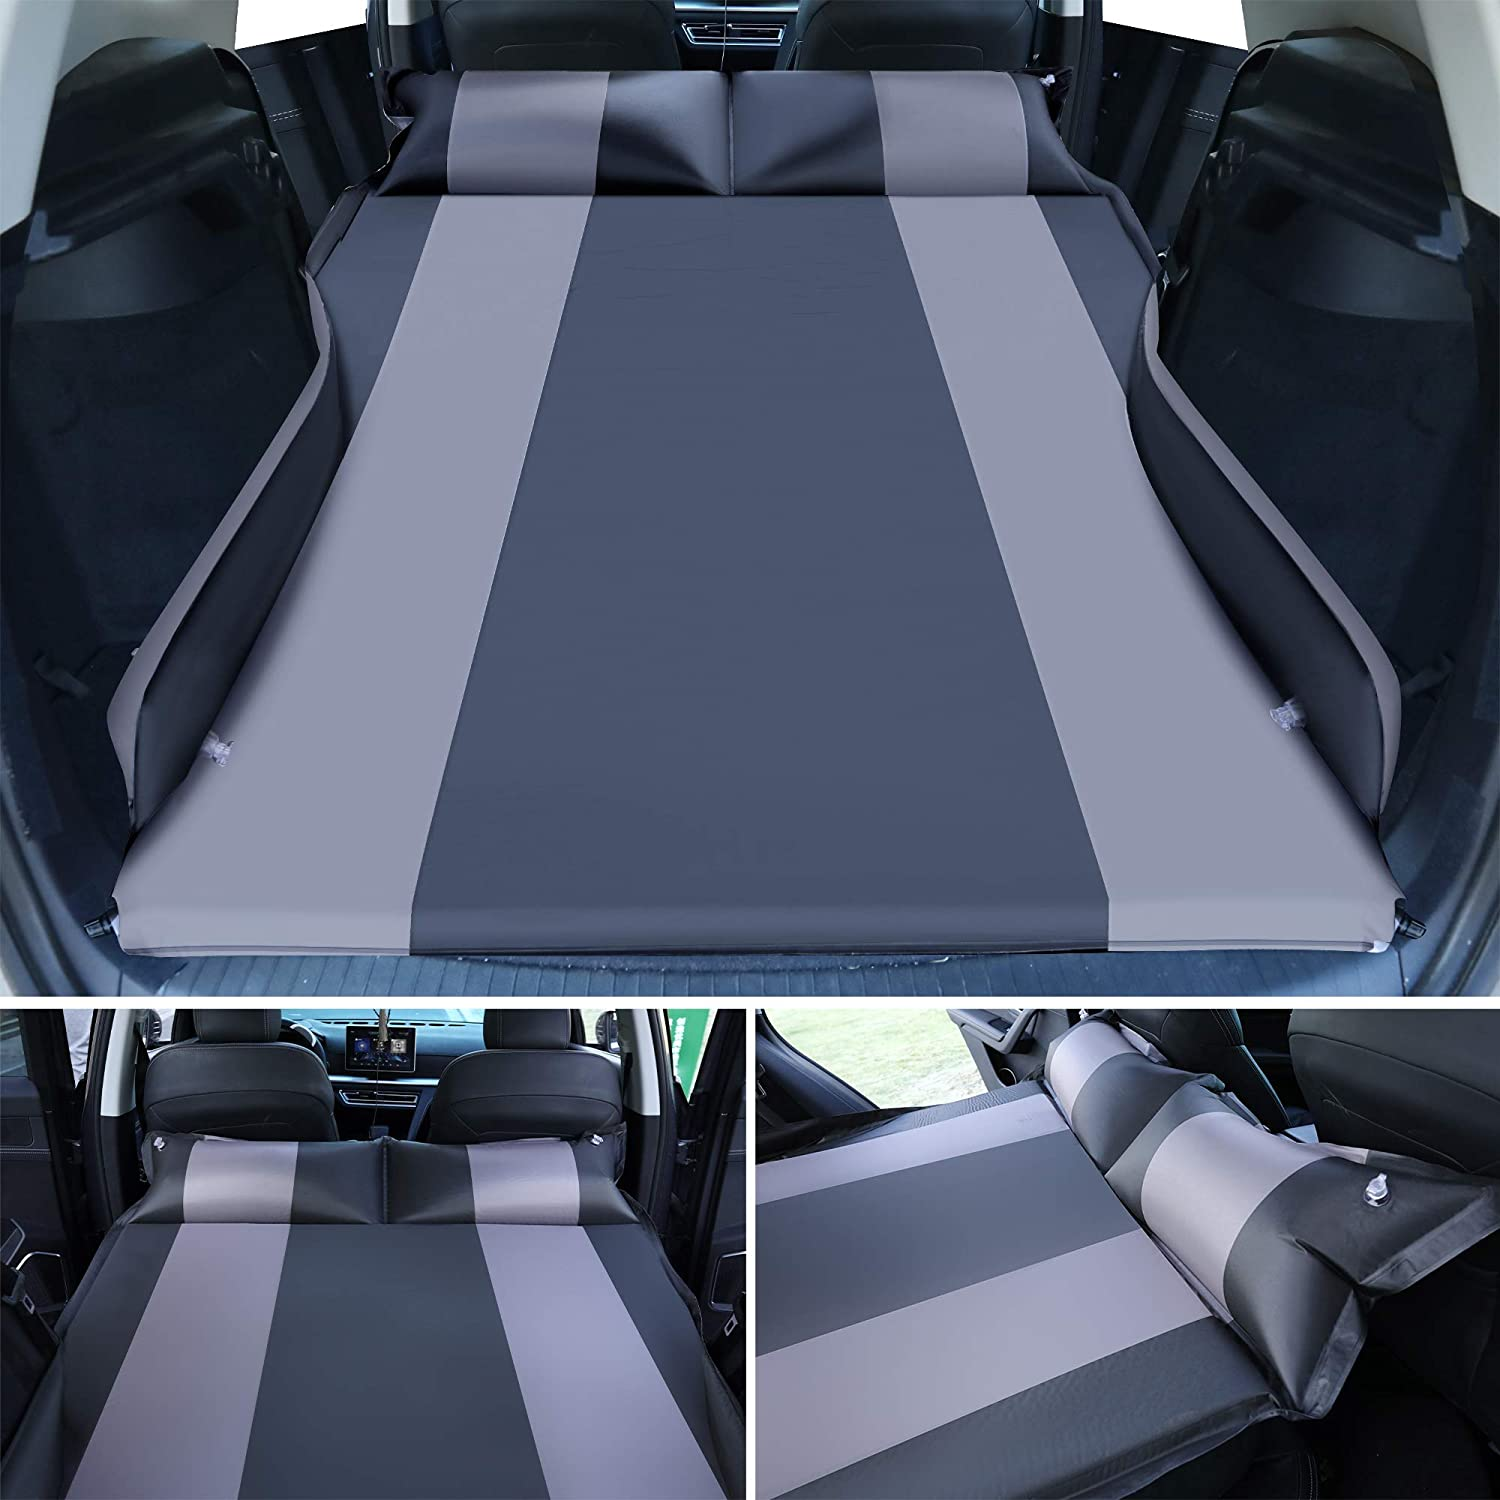 Heyoh Automatic SUV air Mattress Perfect Car Mattress with Inflatable Pillow Used for Minivan//SUV//Truck Back seat Self Inflating Sleeping pad for car Camping or Tent Camping